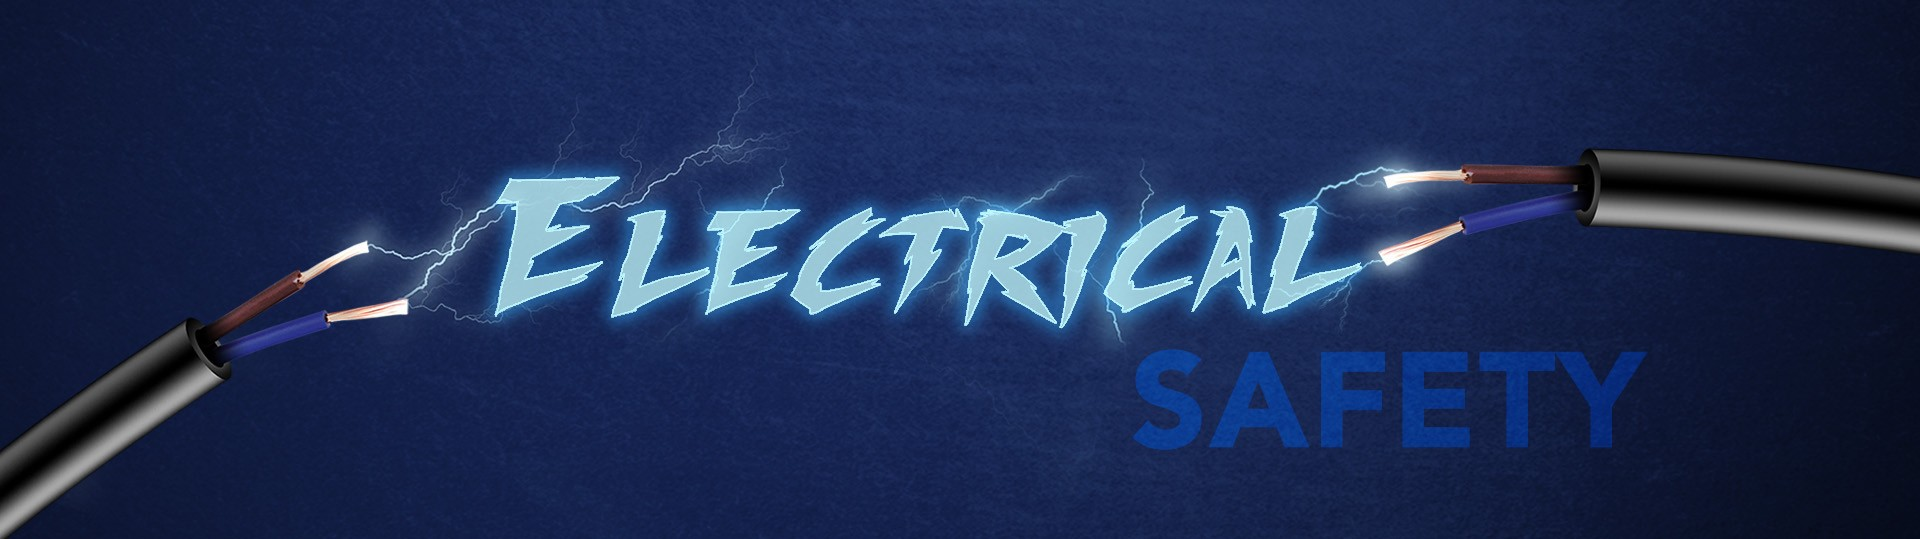 Electrical Safety Program Banner